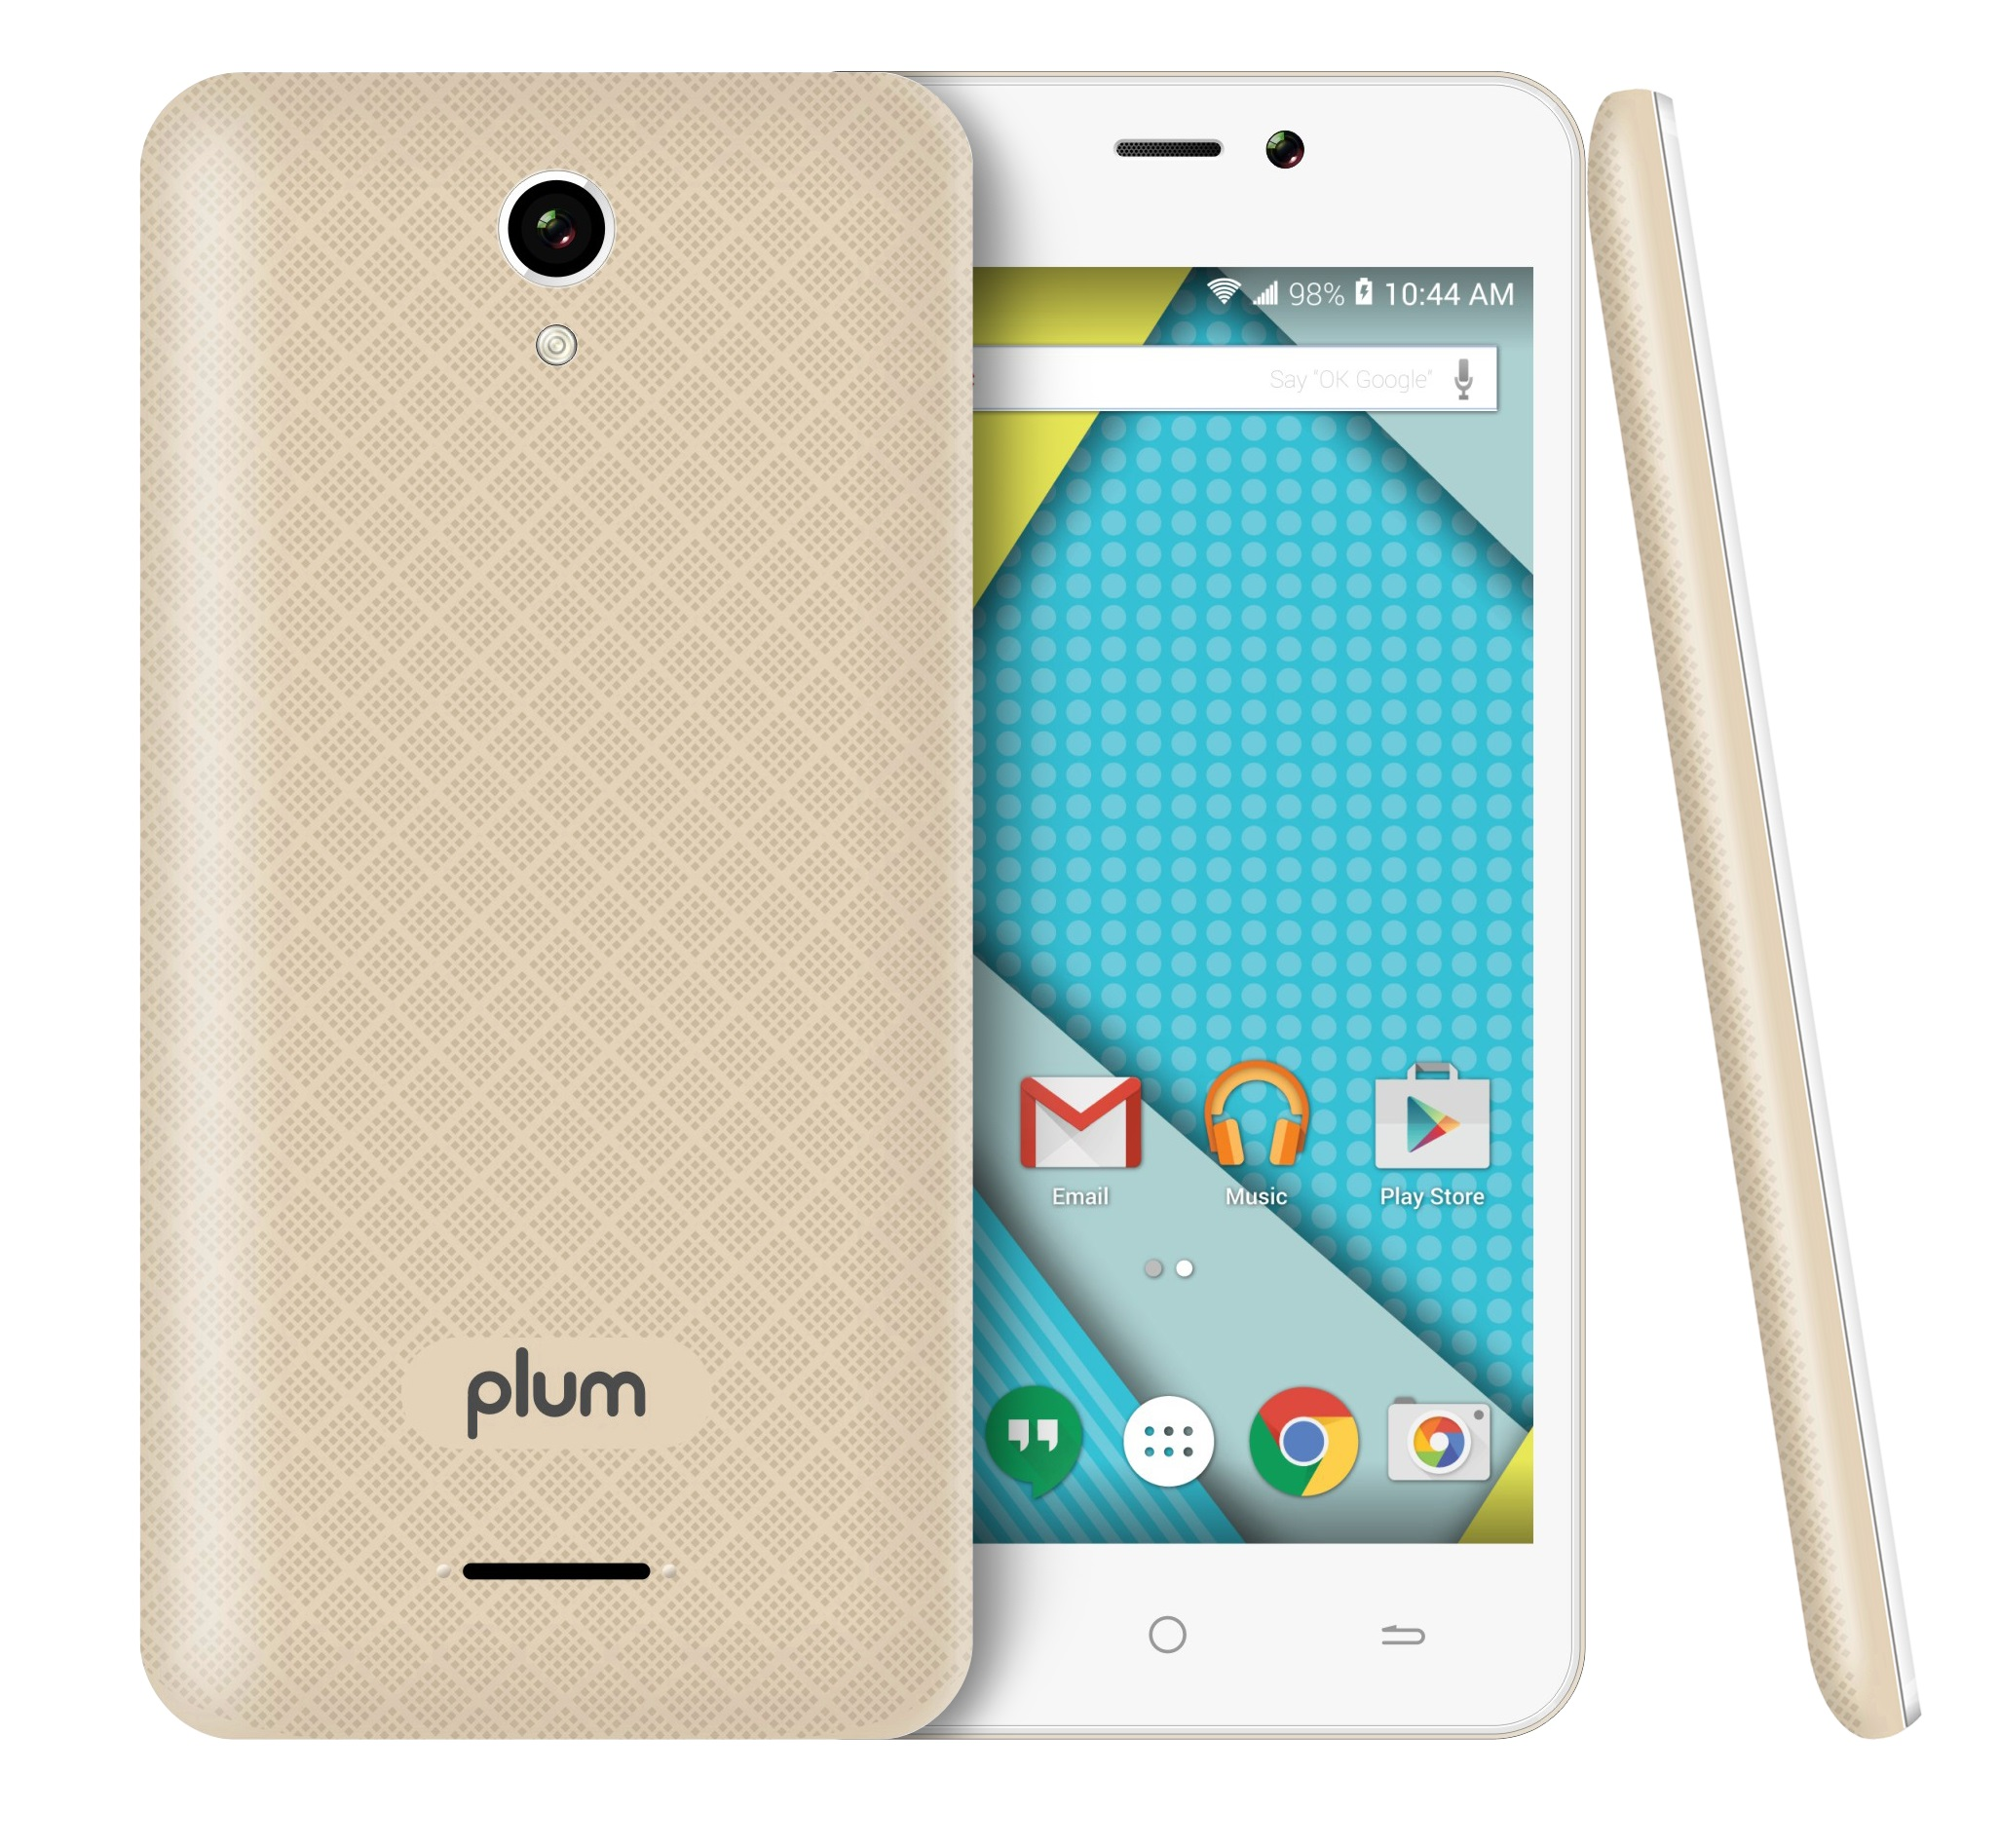 Plum - Unlocked Smart Cell Phone 4G GSM Android 8GB Memory Dual Camera Quad Core - Z515 Gold